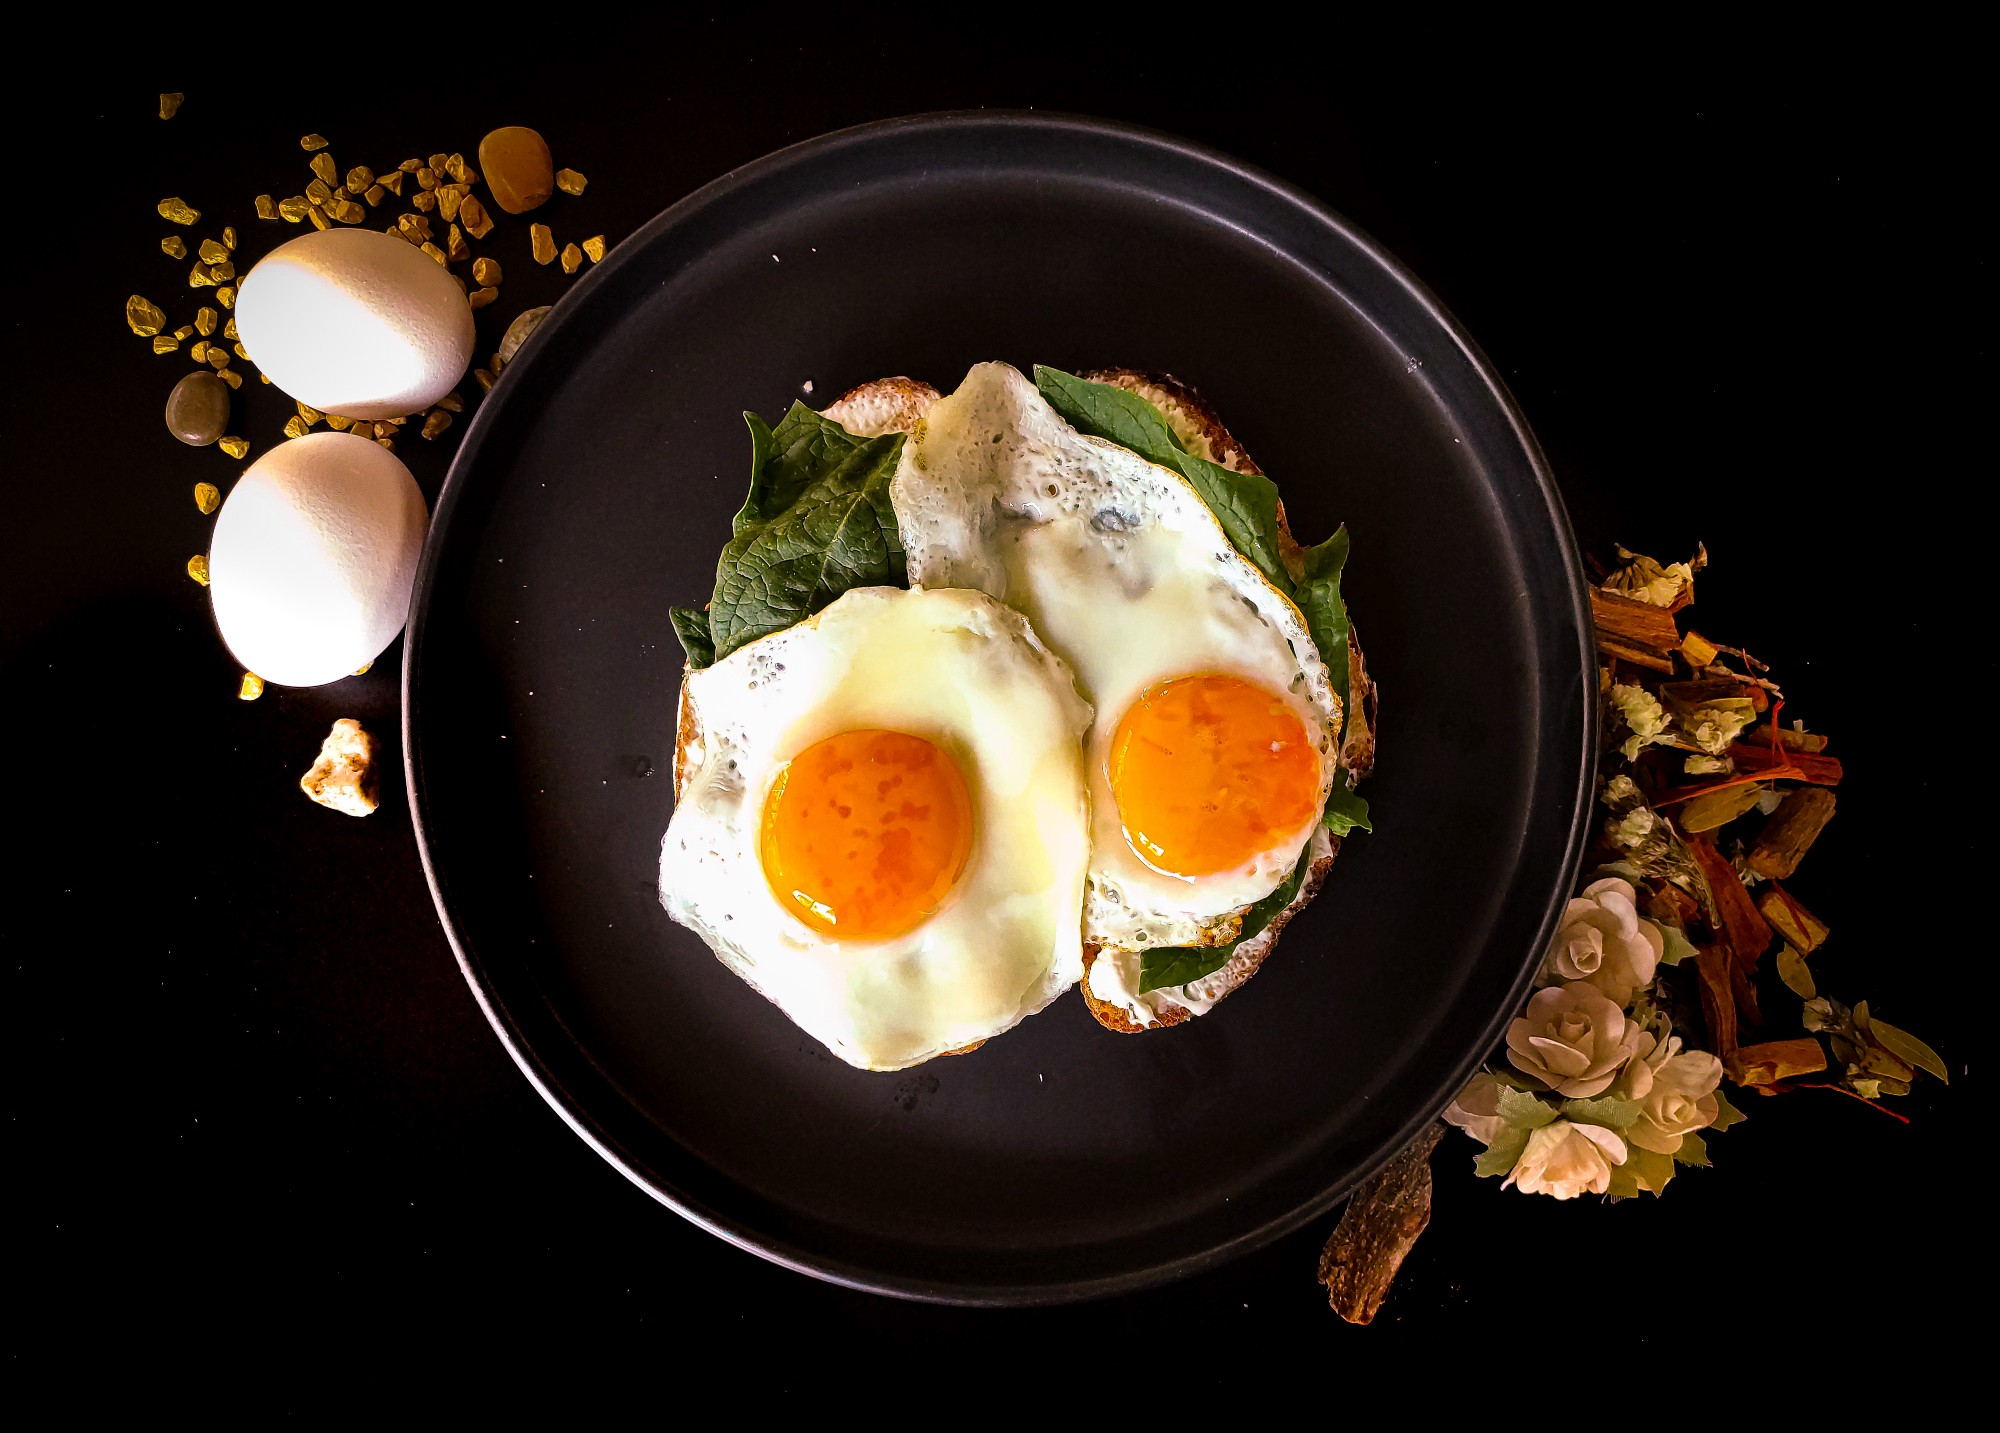 the image is that of two fried eggs in a pan; on the side are two more eggs as if waiting their turn and the images is complete with what appears to be nuts and flowers on the side for decorative purposes